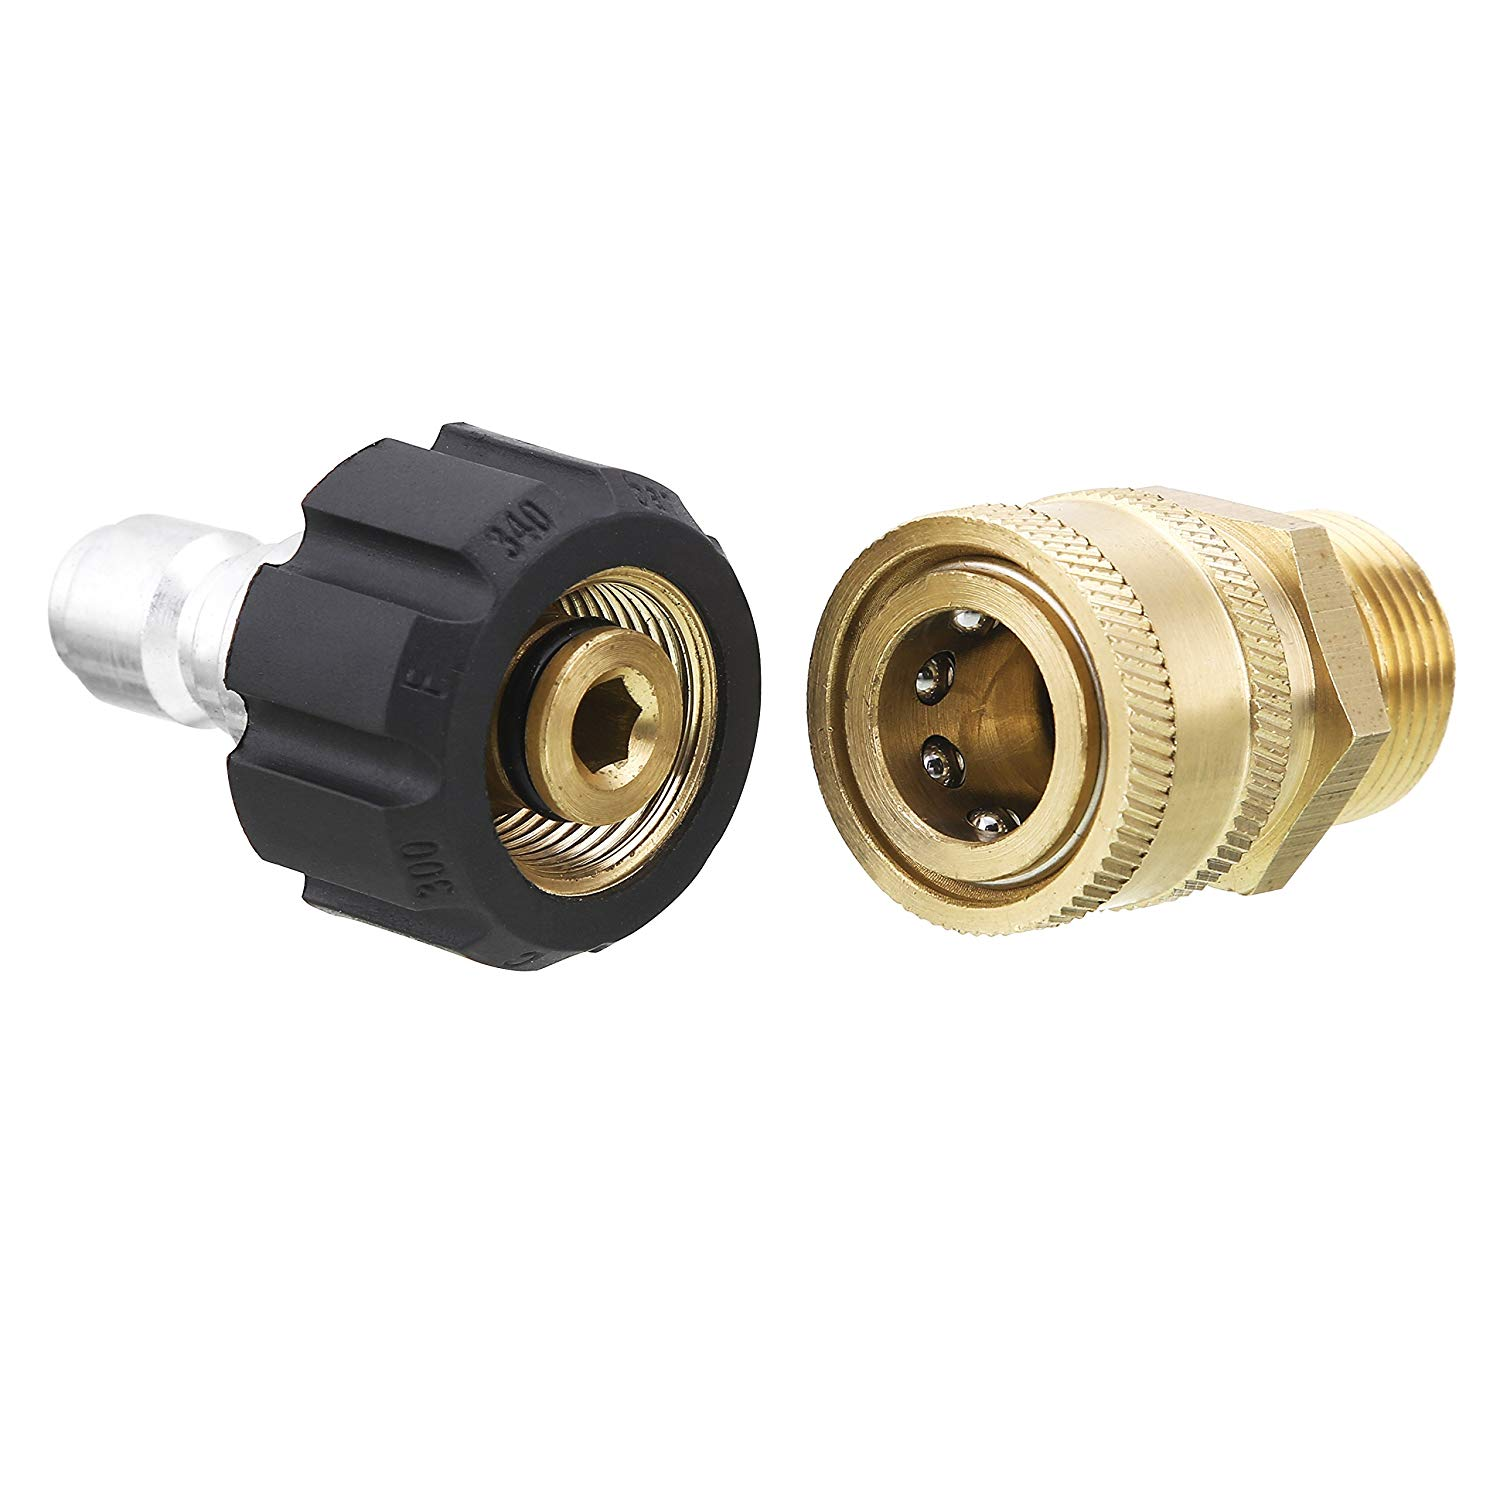 BLACK RIDGE Quick Disconnect Kit, Pressure Washer Adapter Set, Metric M22 14mm Swivel to M22 Male Fitting, 5000 PSI